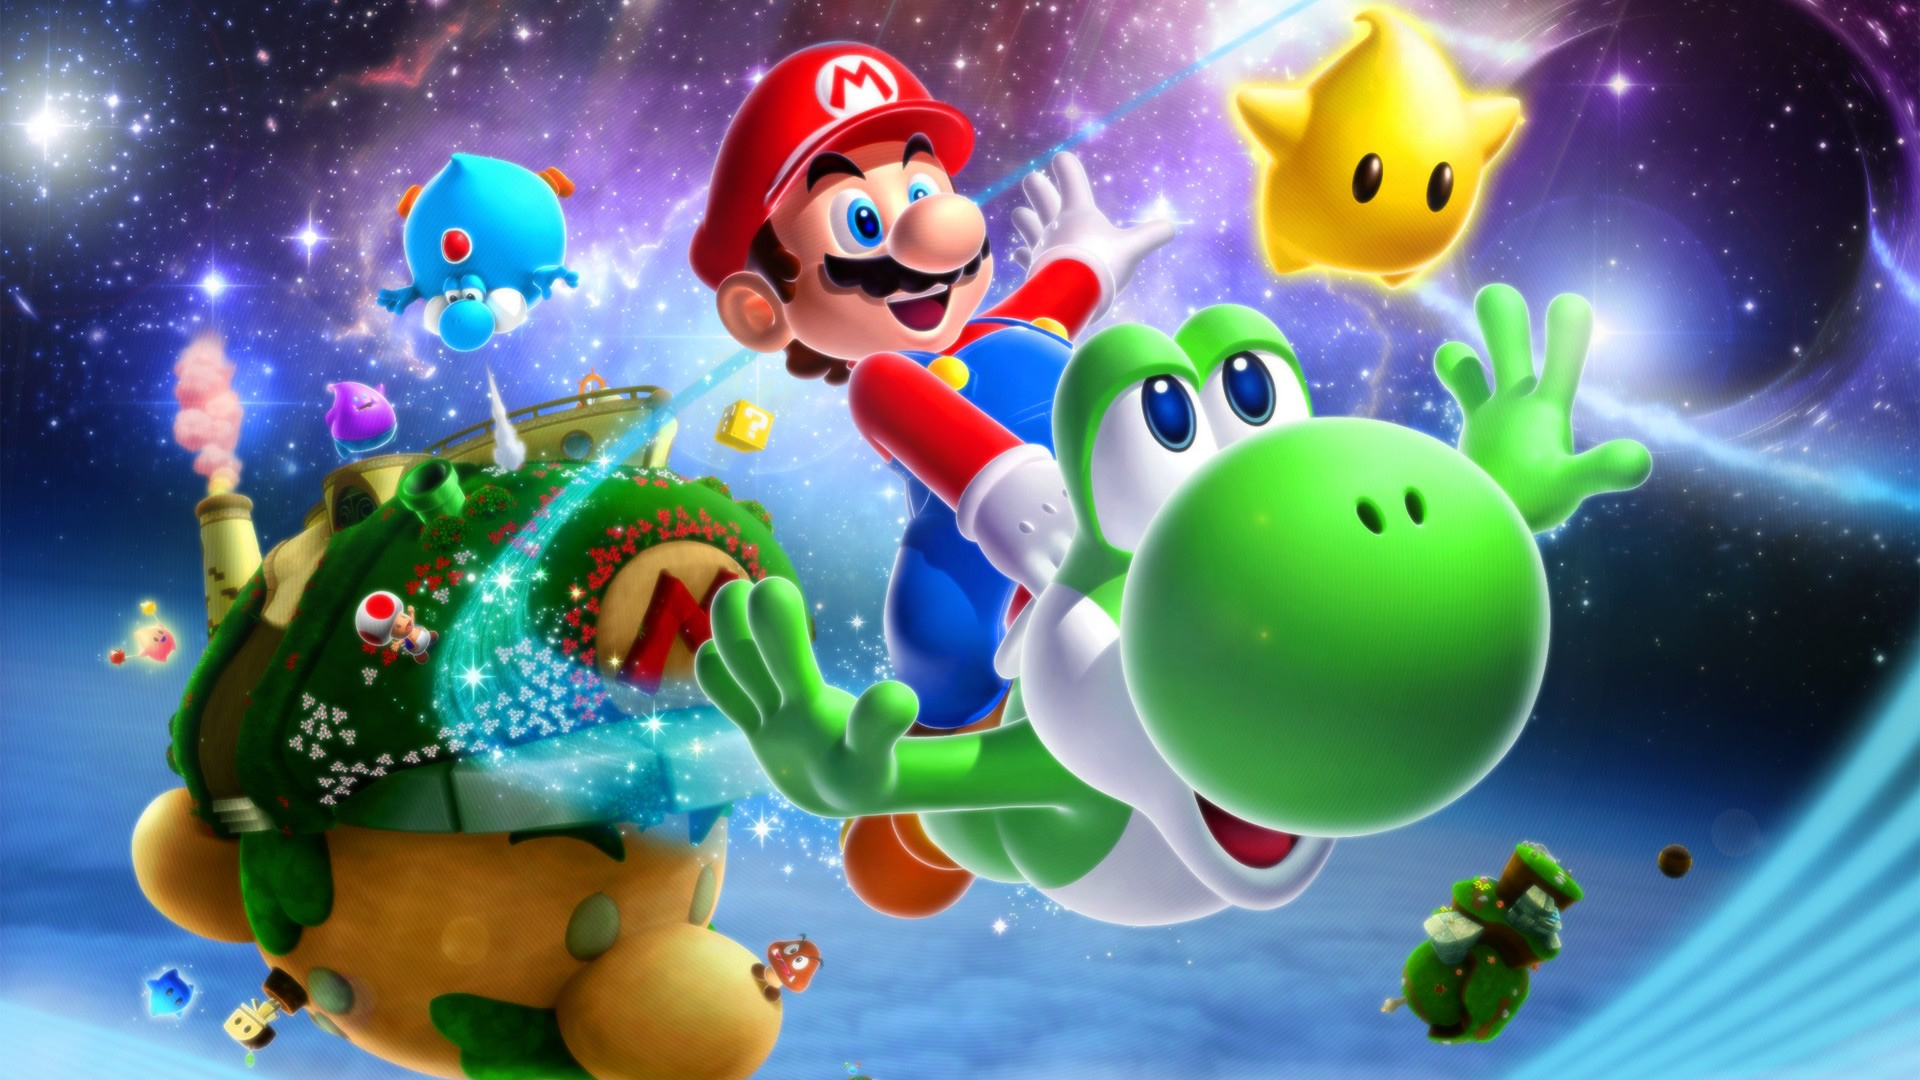 What if Nintendo Made Super Mario Galaxy 3?